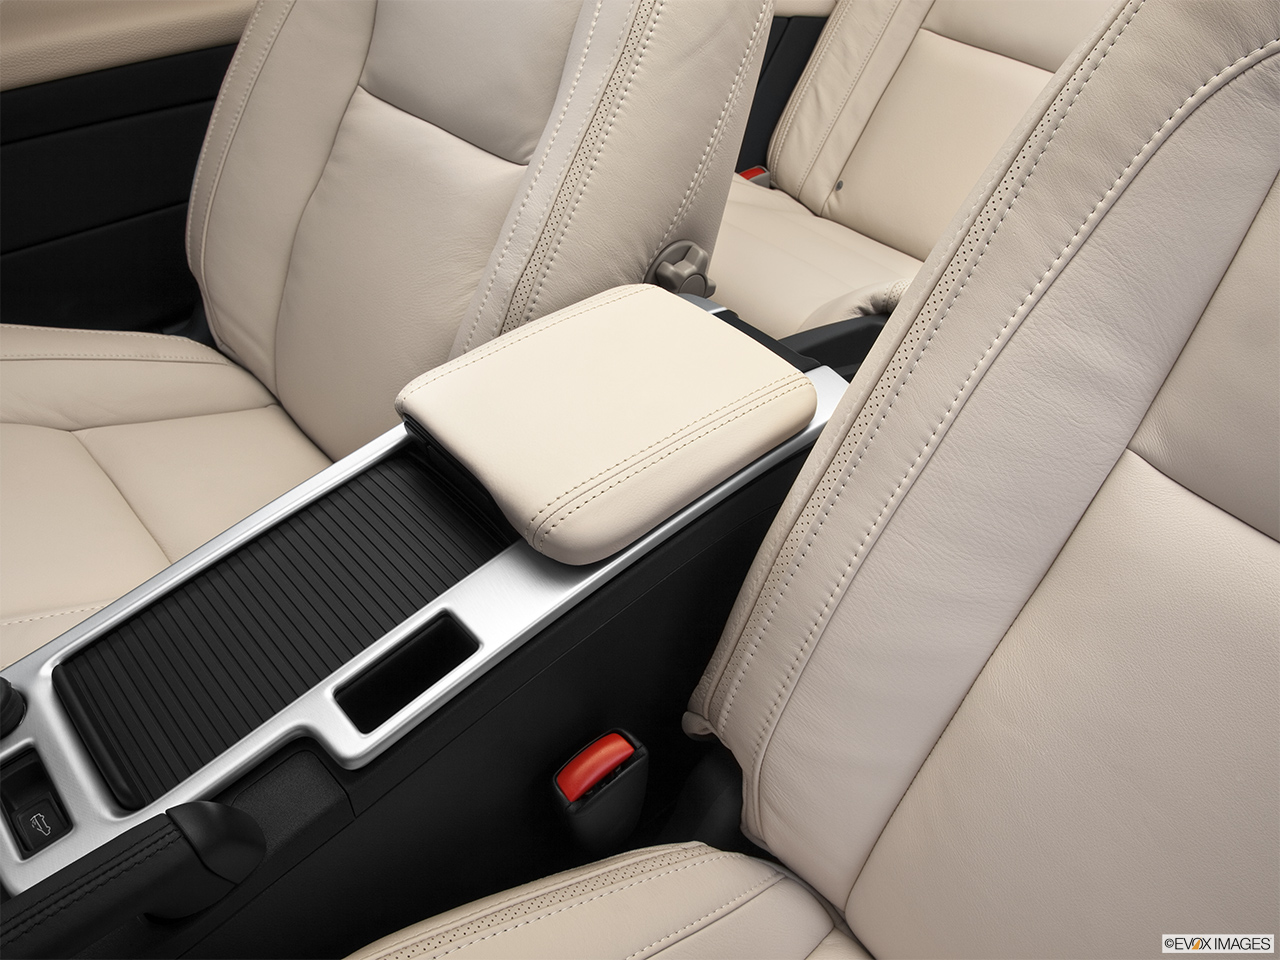 2013 Volvo C70 T5 Platinum Front center console with closed lid, from driver's side looking down